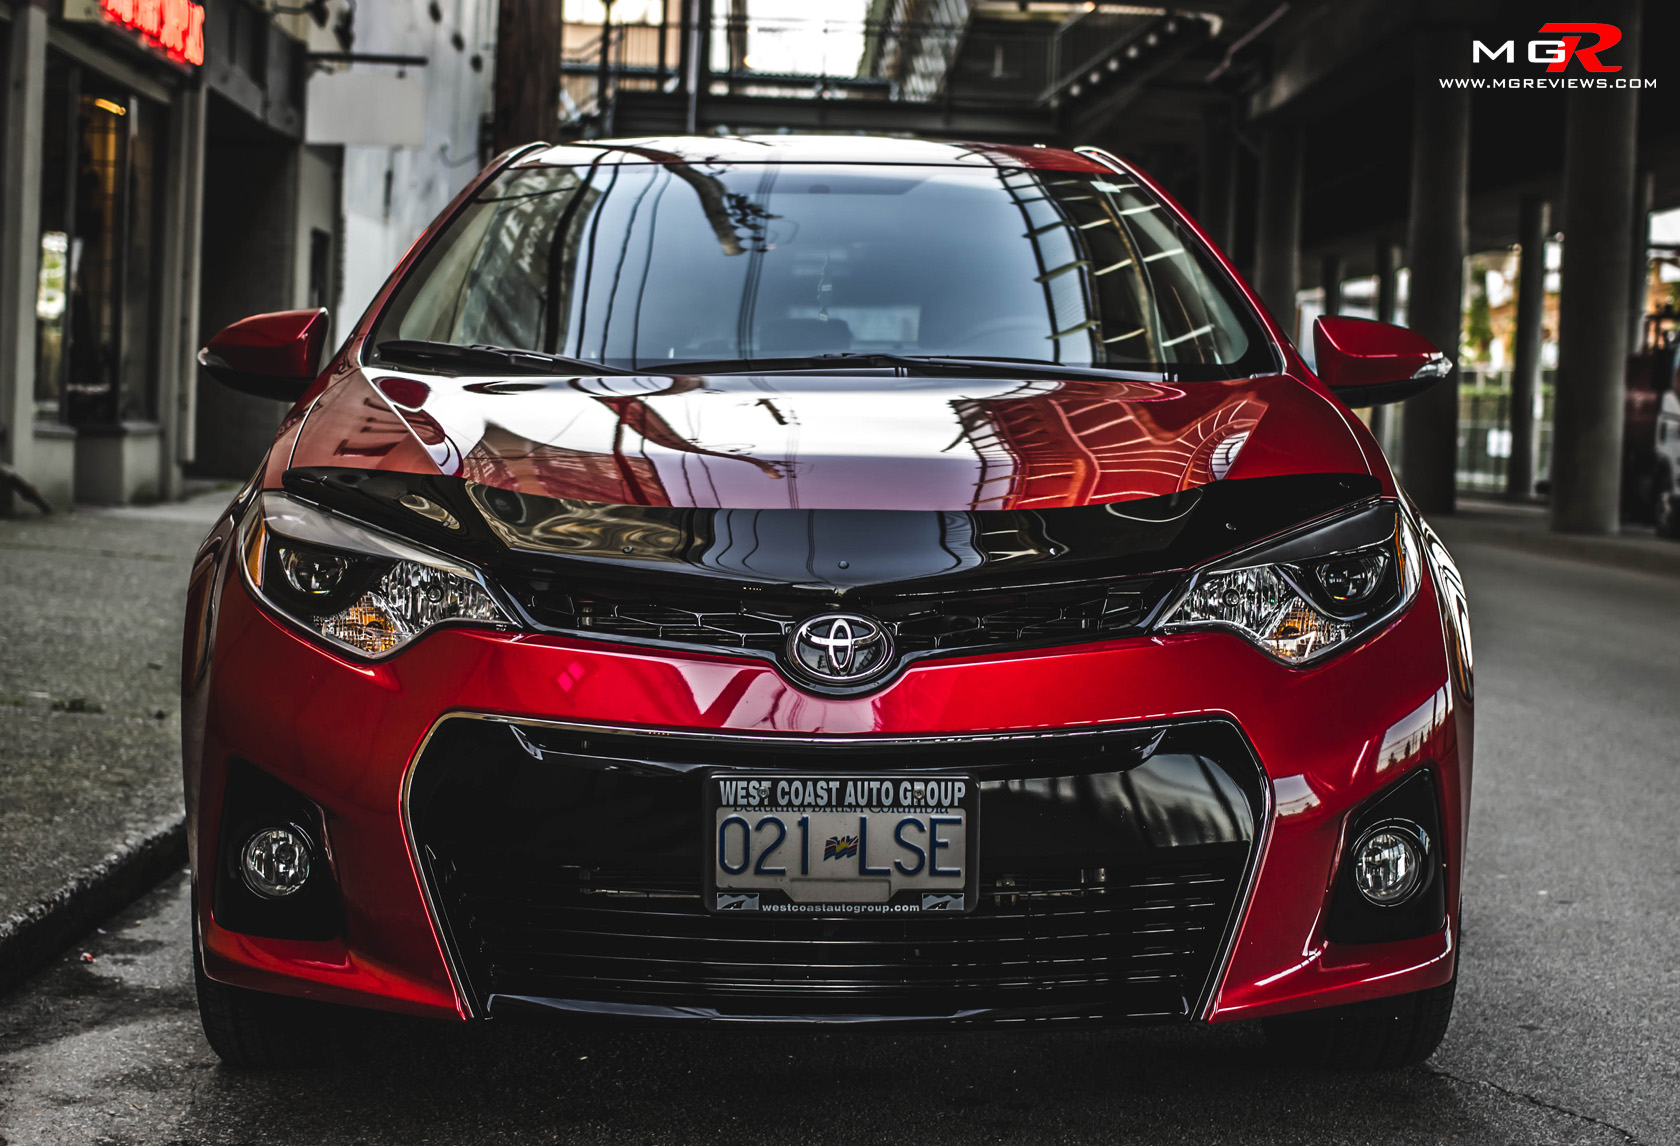 review 2014 toyota corolla s m g reviews. Black Bedroom Furniture Sets. Home Design Ideas